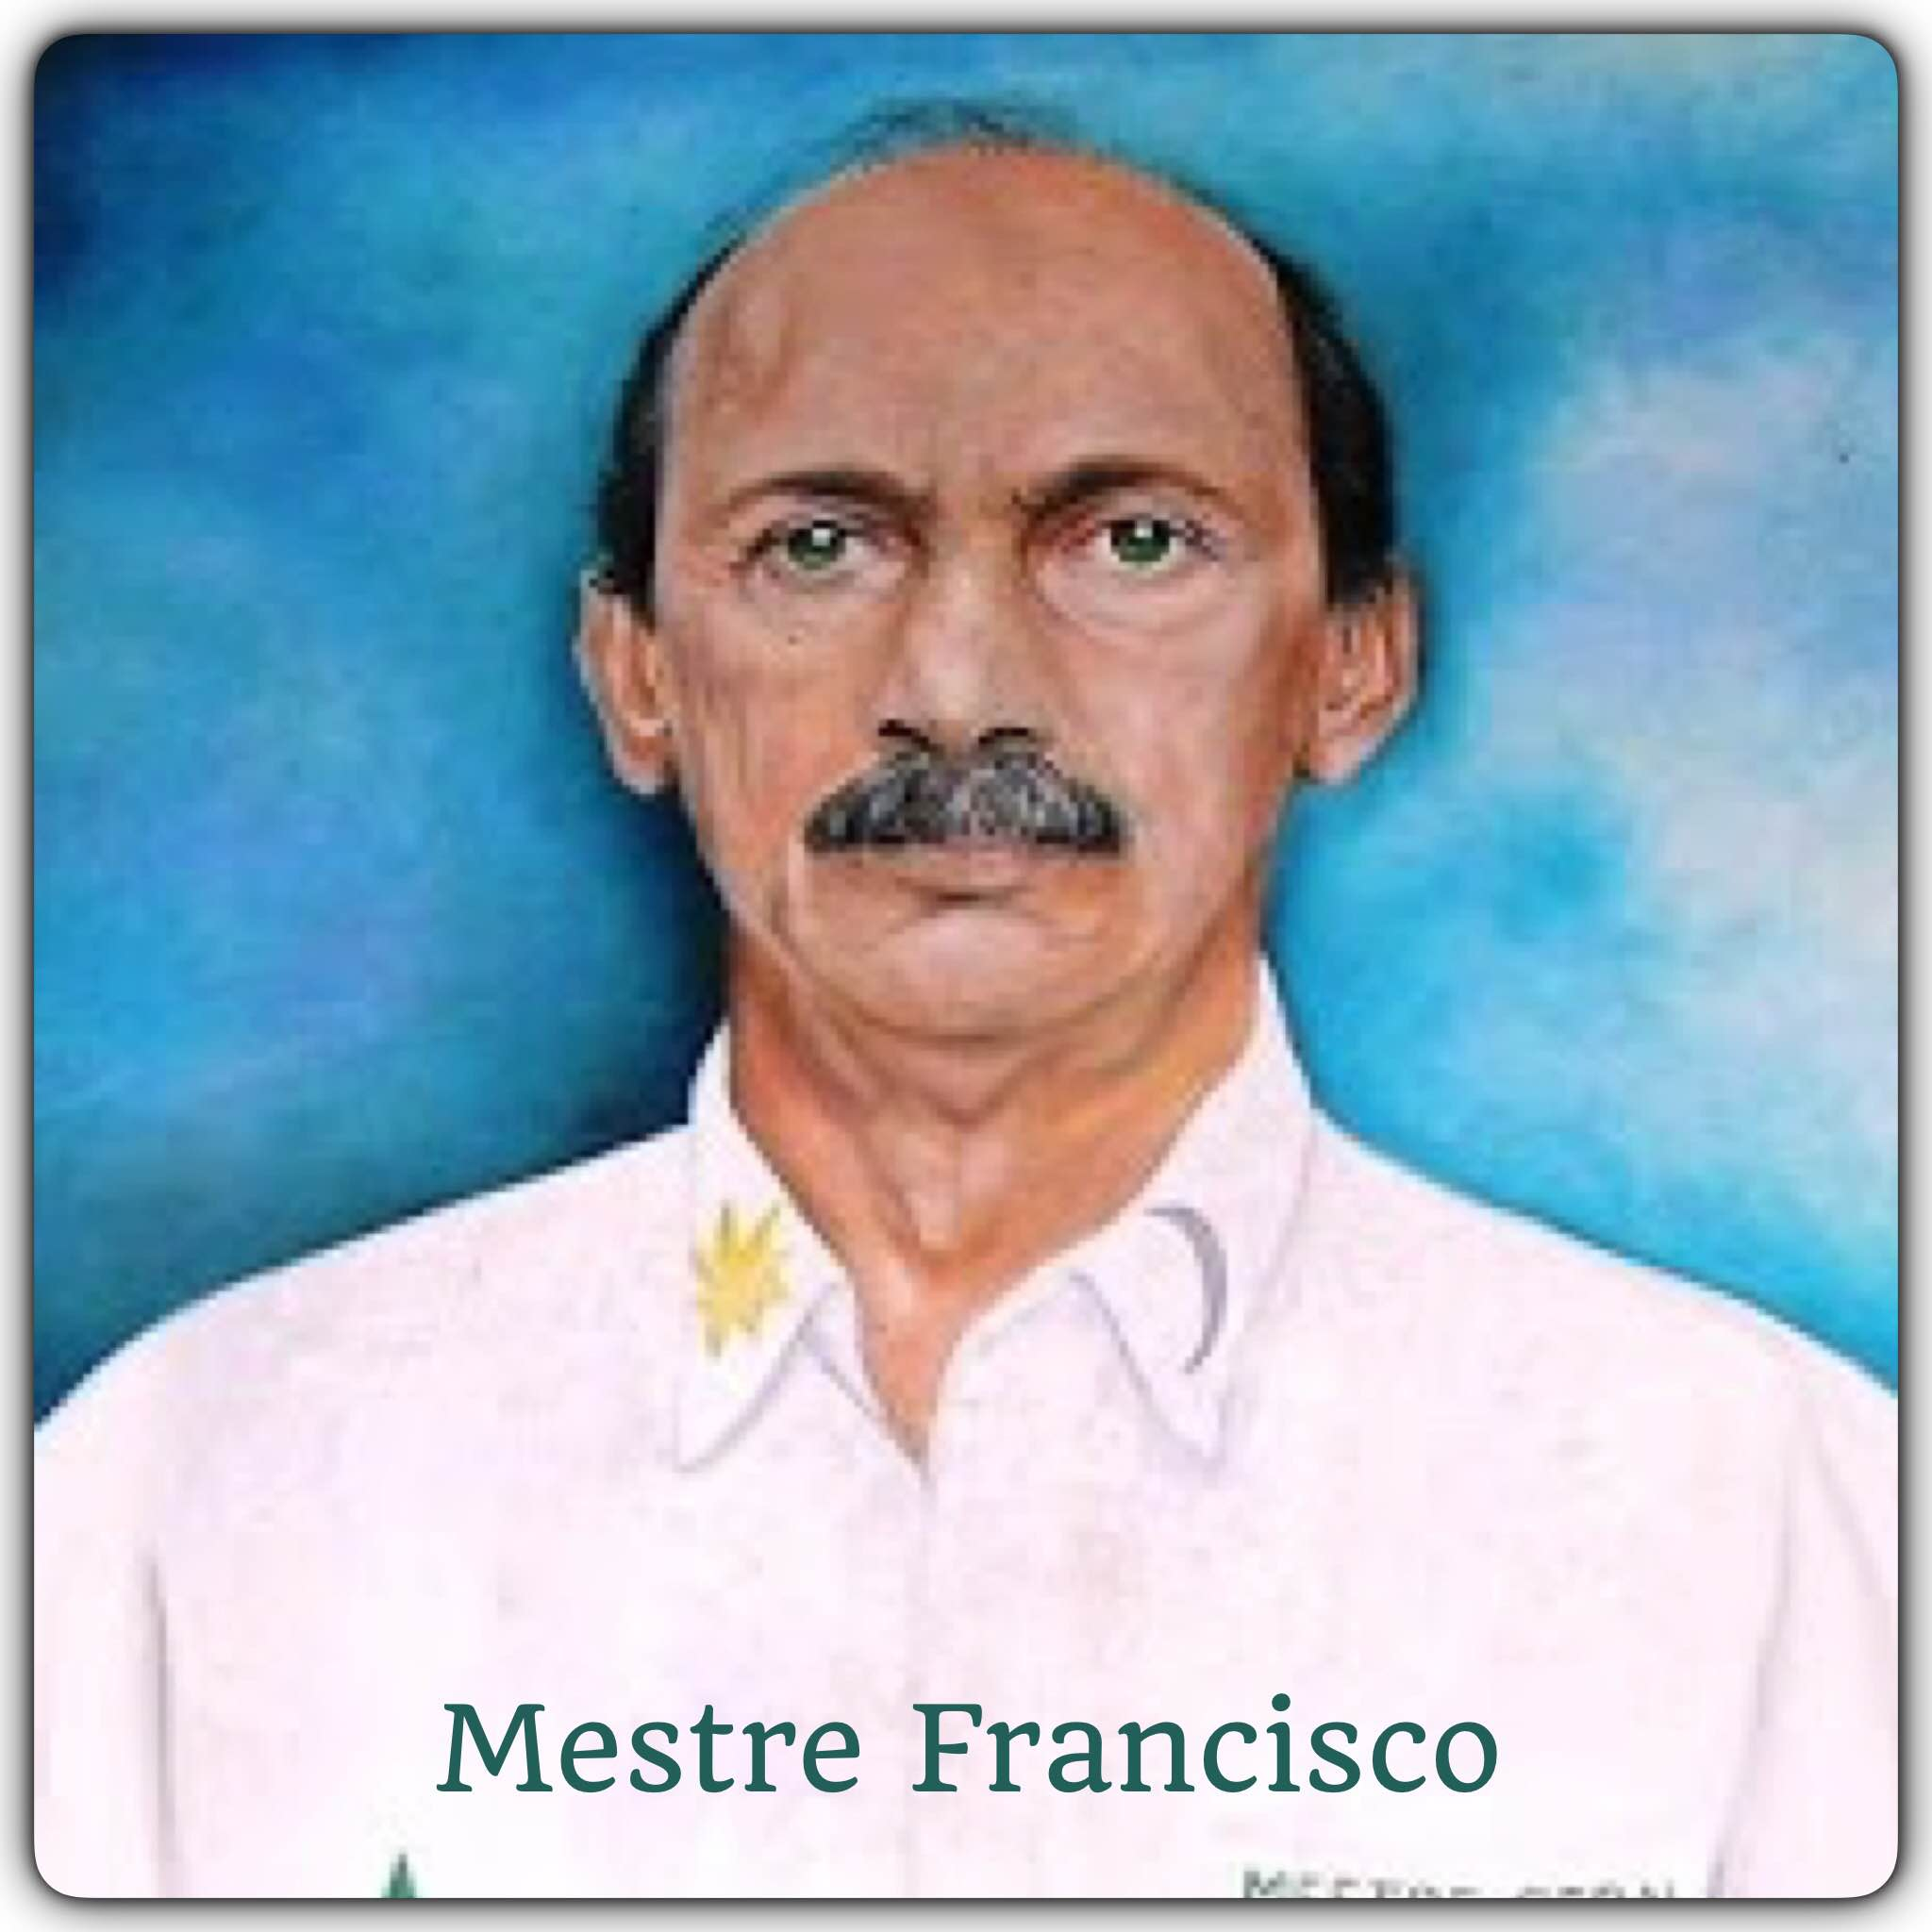 Mestre Francisco